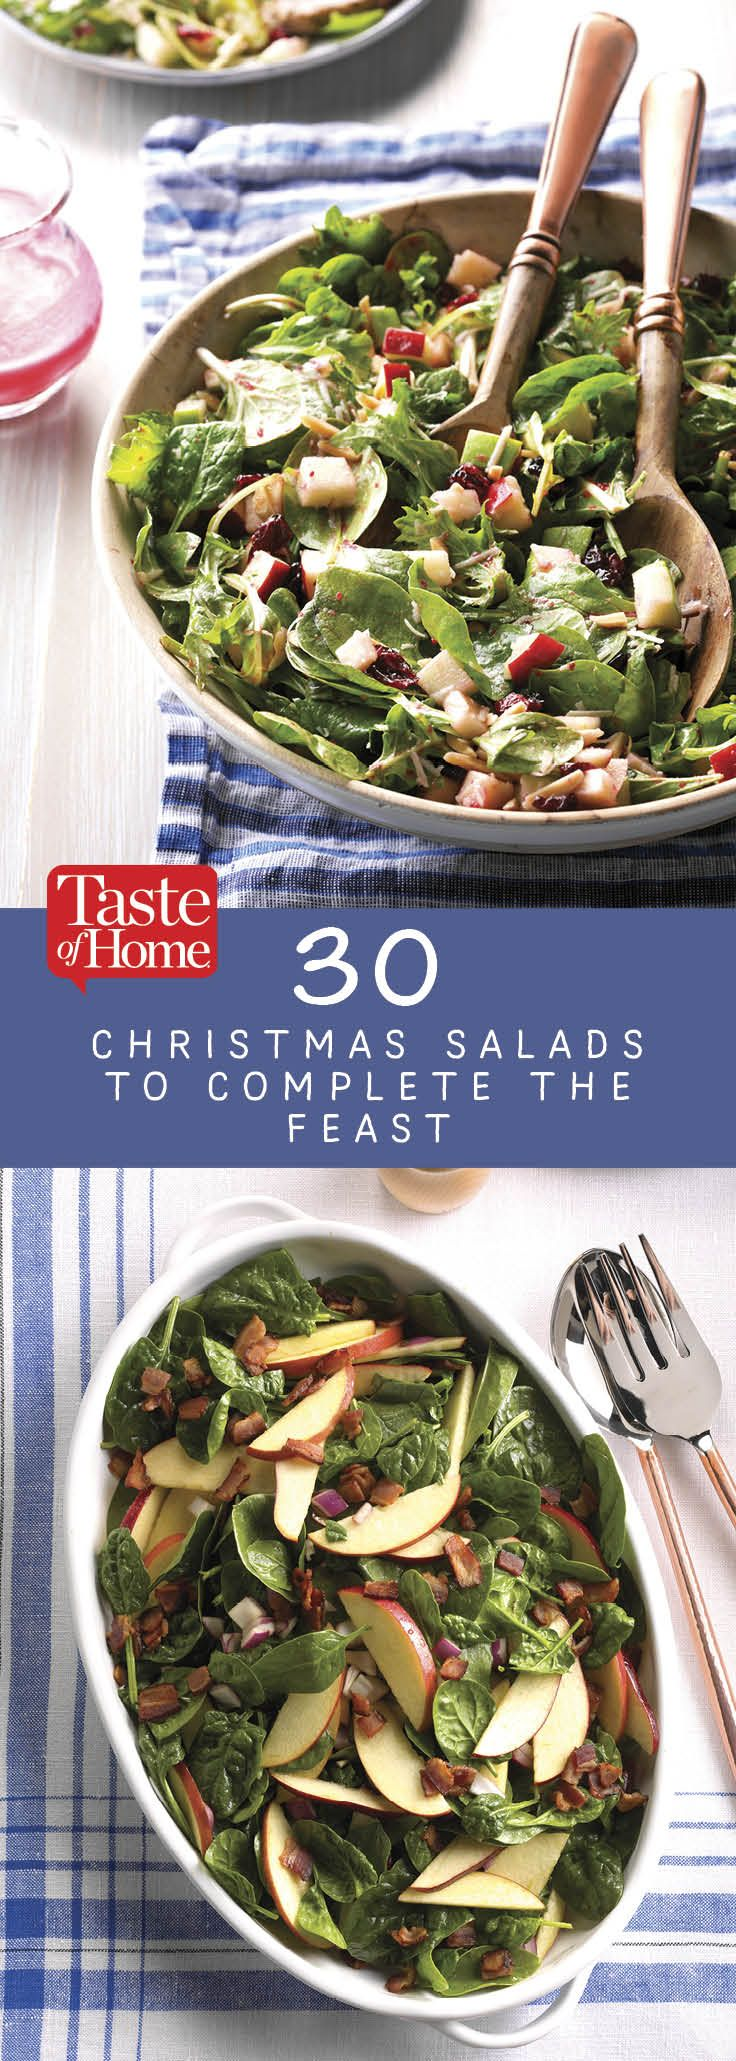 30 Christmas Salads to Complete the Feast